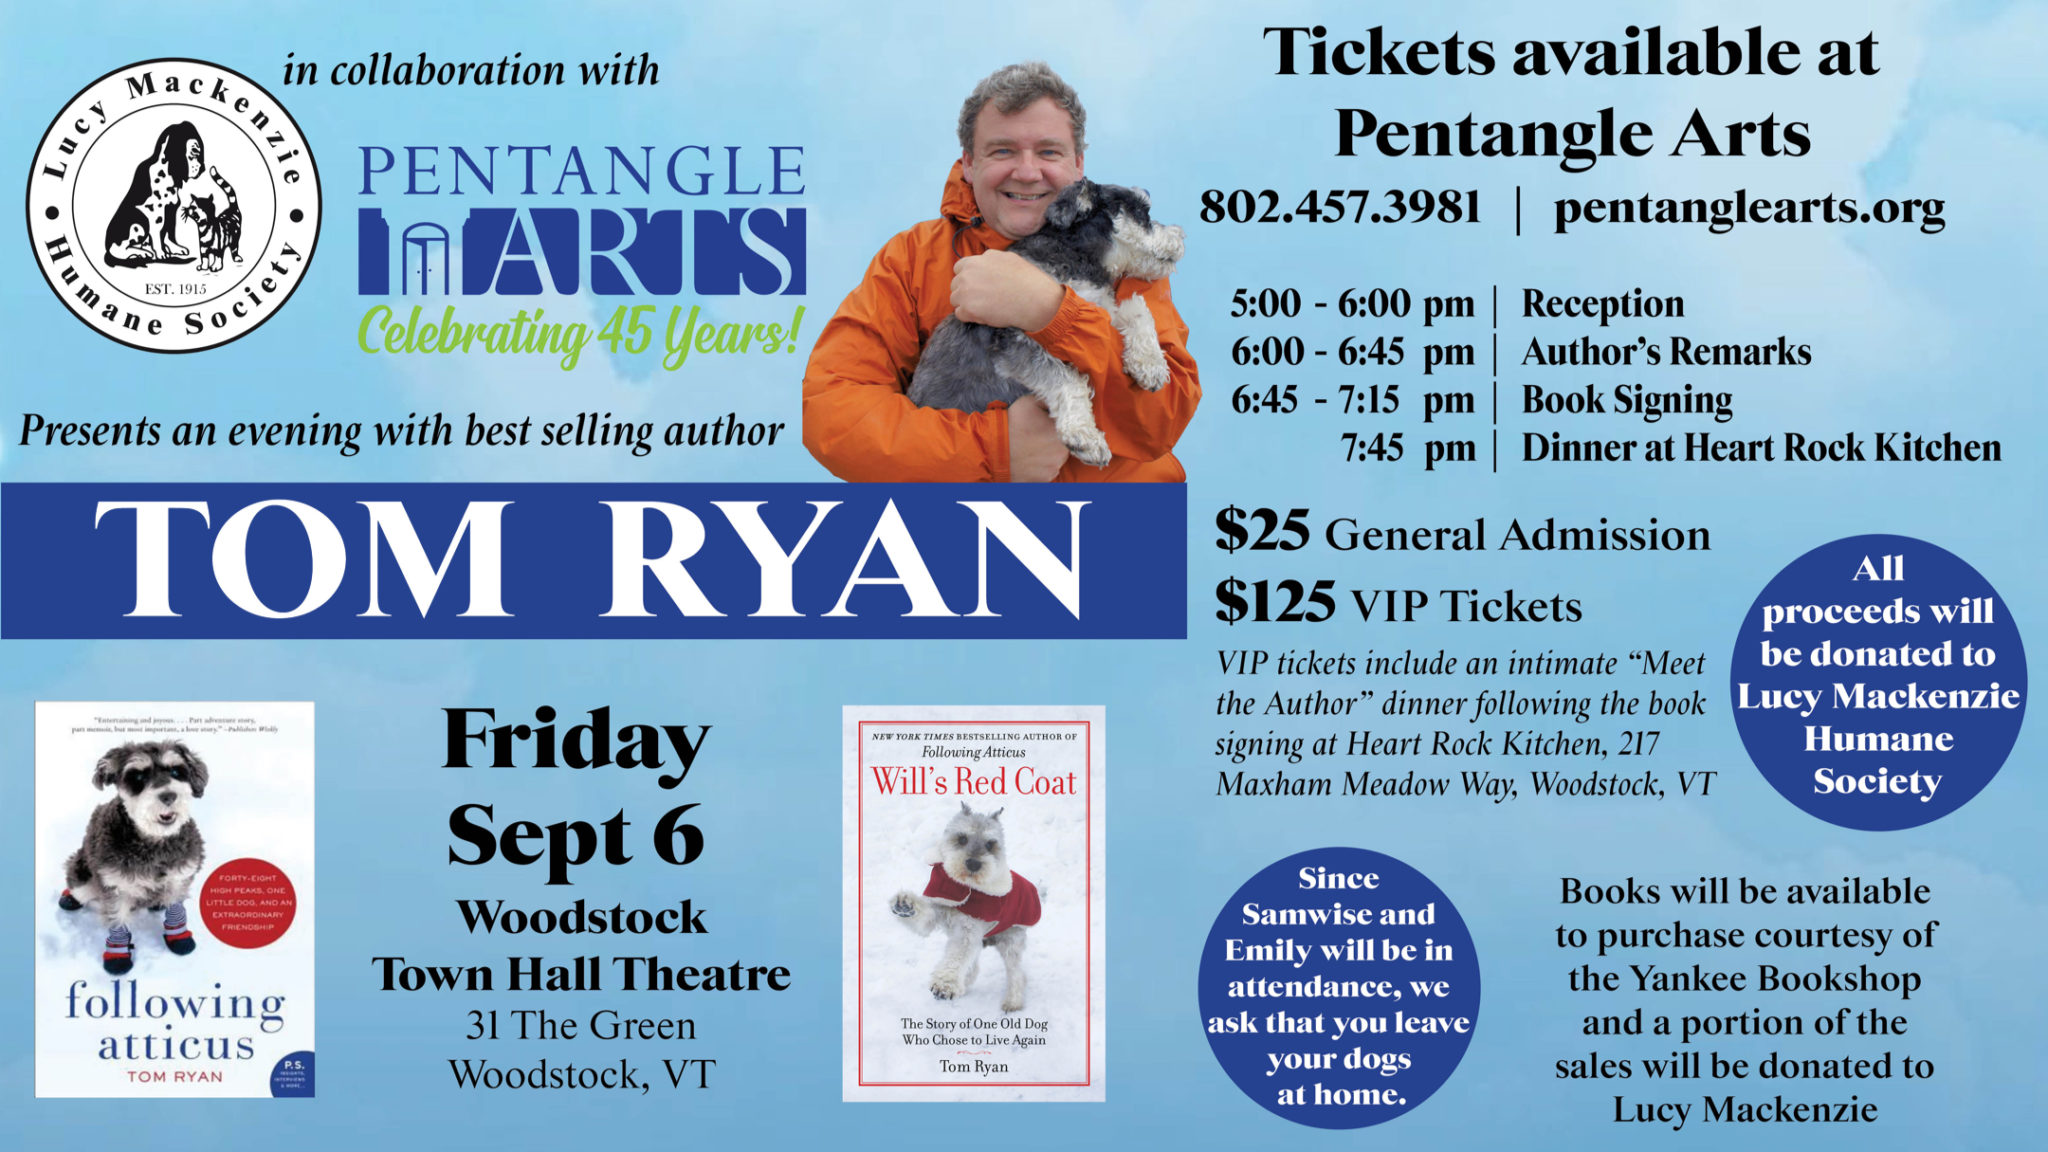 Tom Ryan appearance fundraiser event info